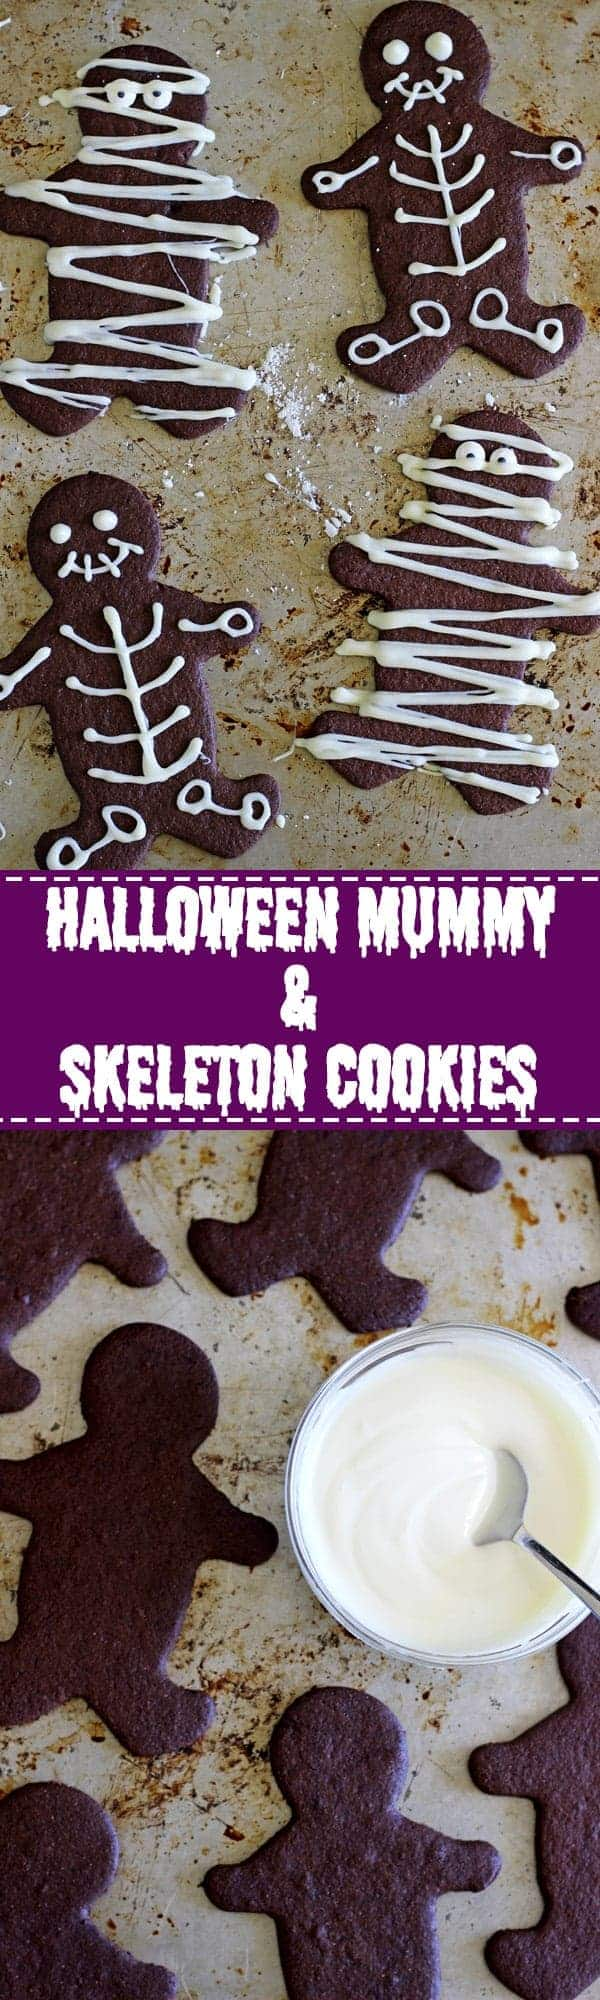 Chocolate Halloween Mummy & Skeleton Cookies - perfect for Halloween parties, trick or treaters and for making with kids! | thekiwicountrygirl.com